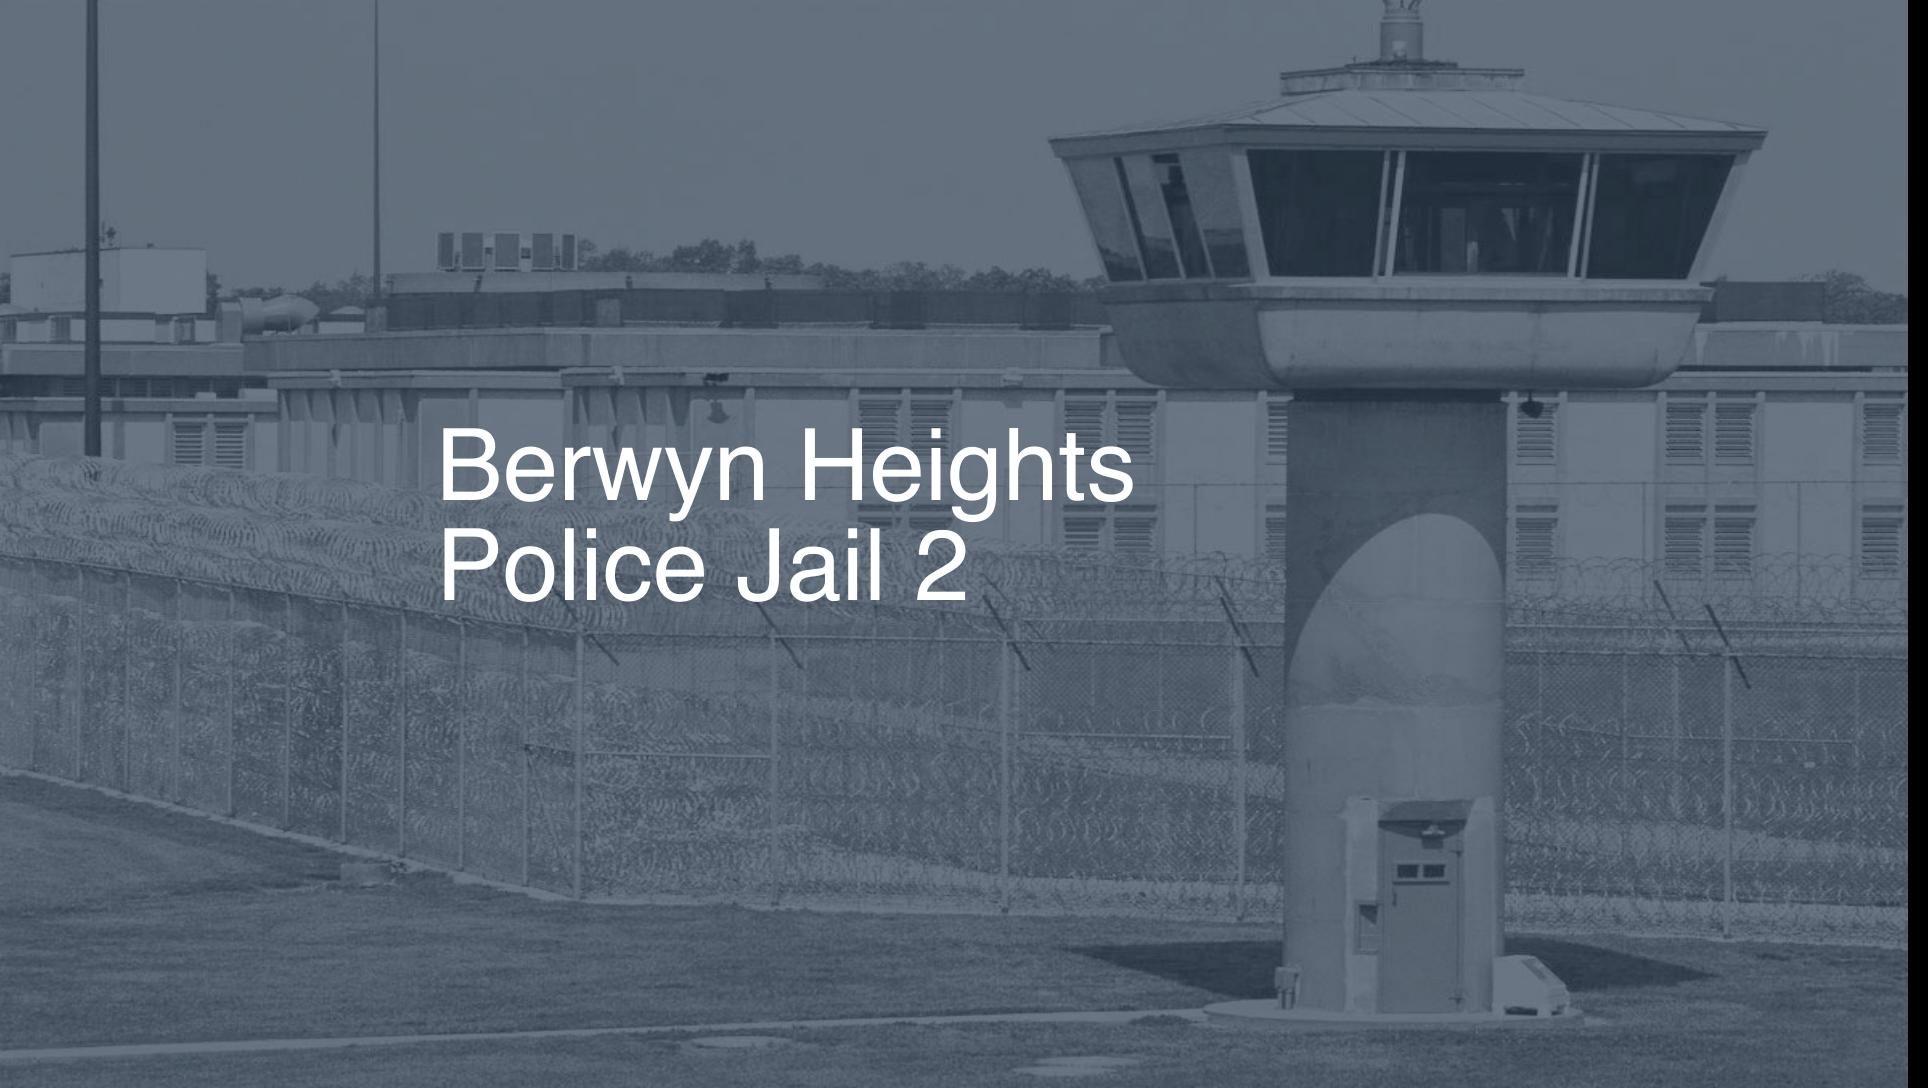 Berwyn Heights Police Jail correctional facility picture